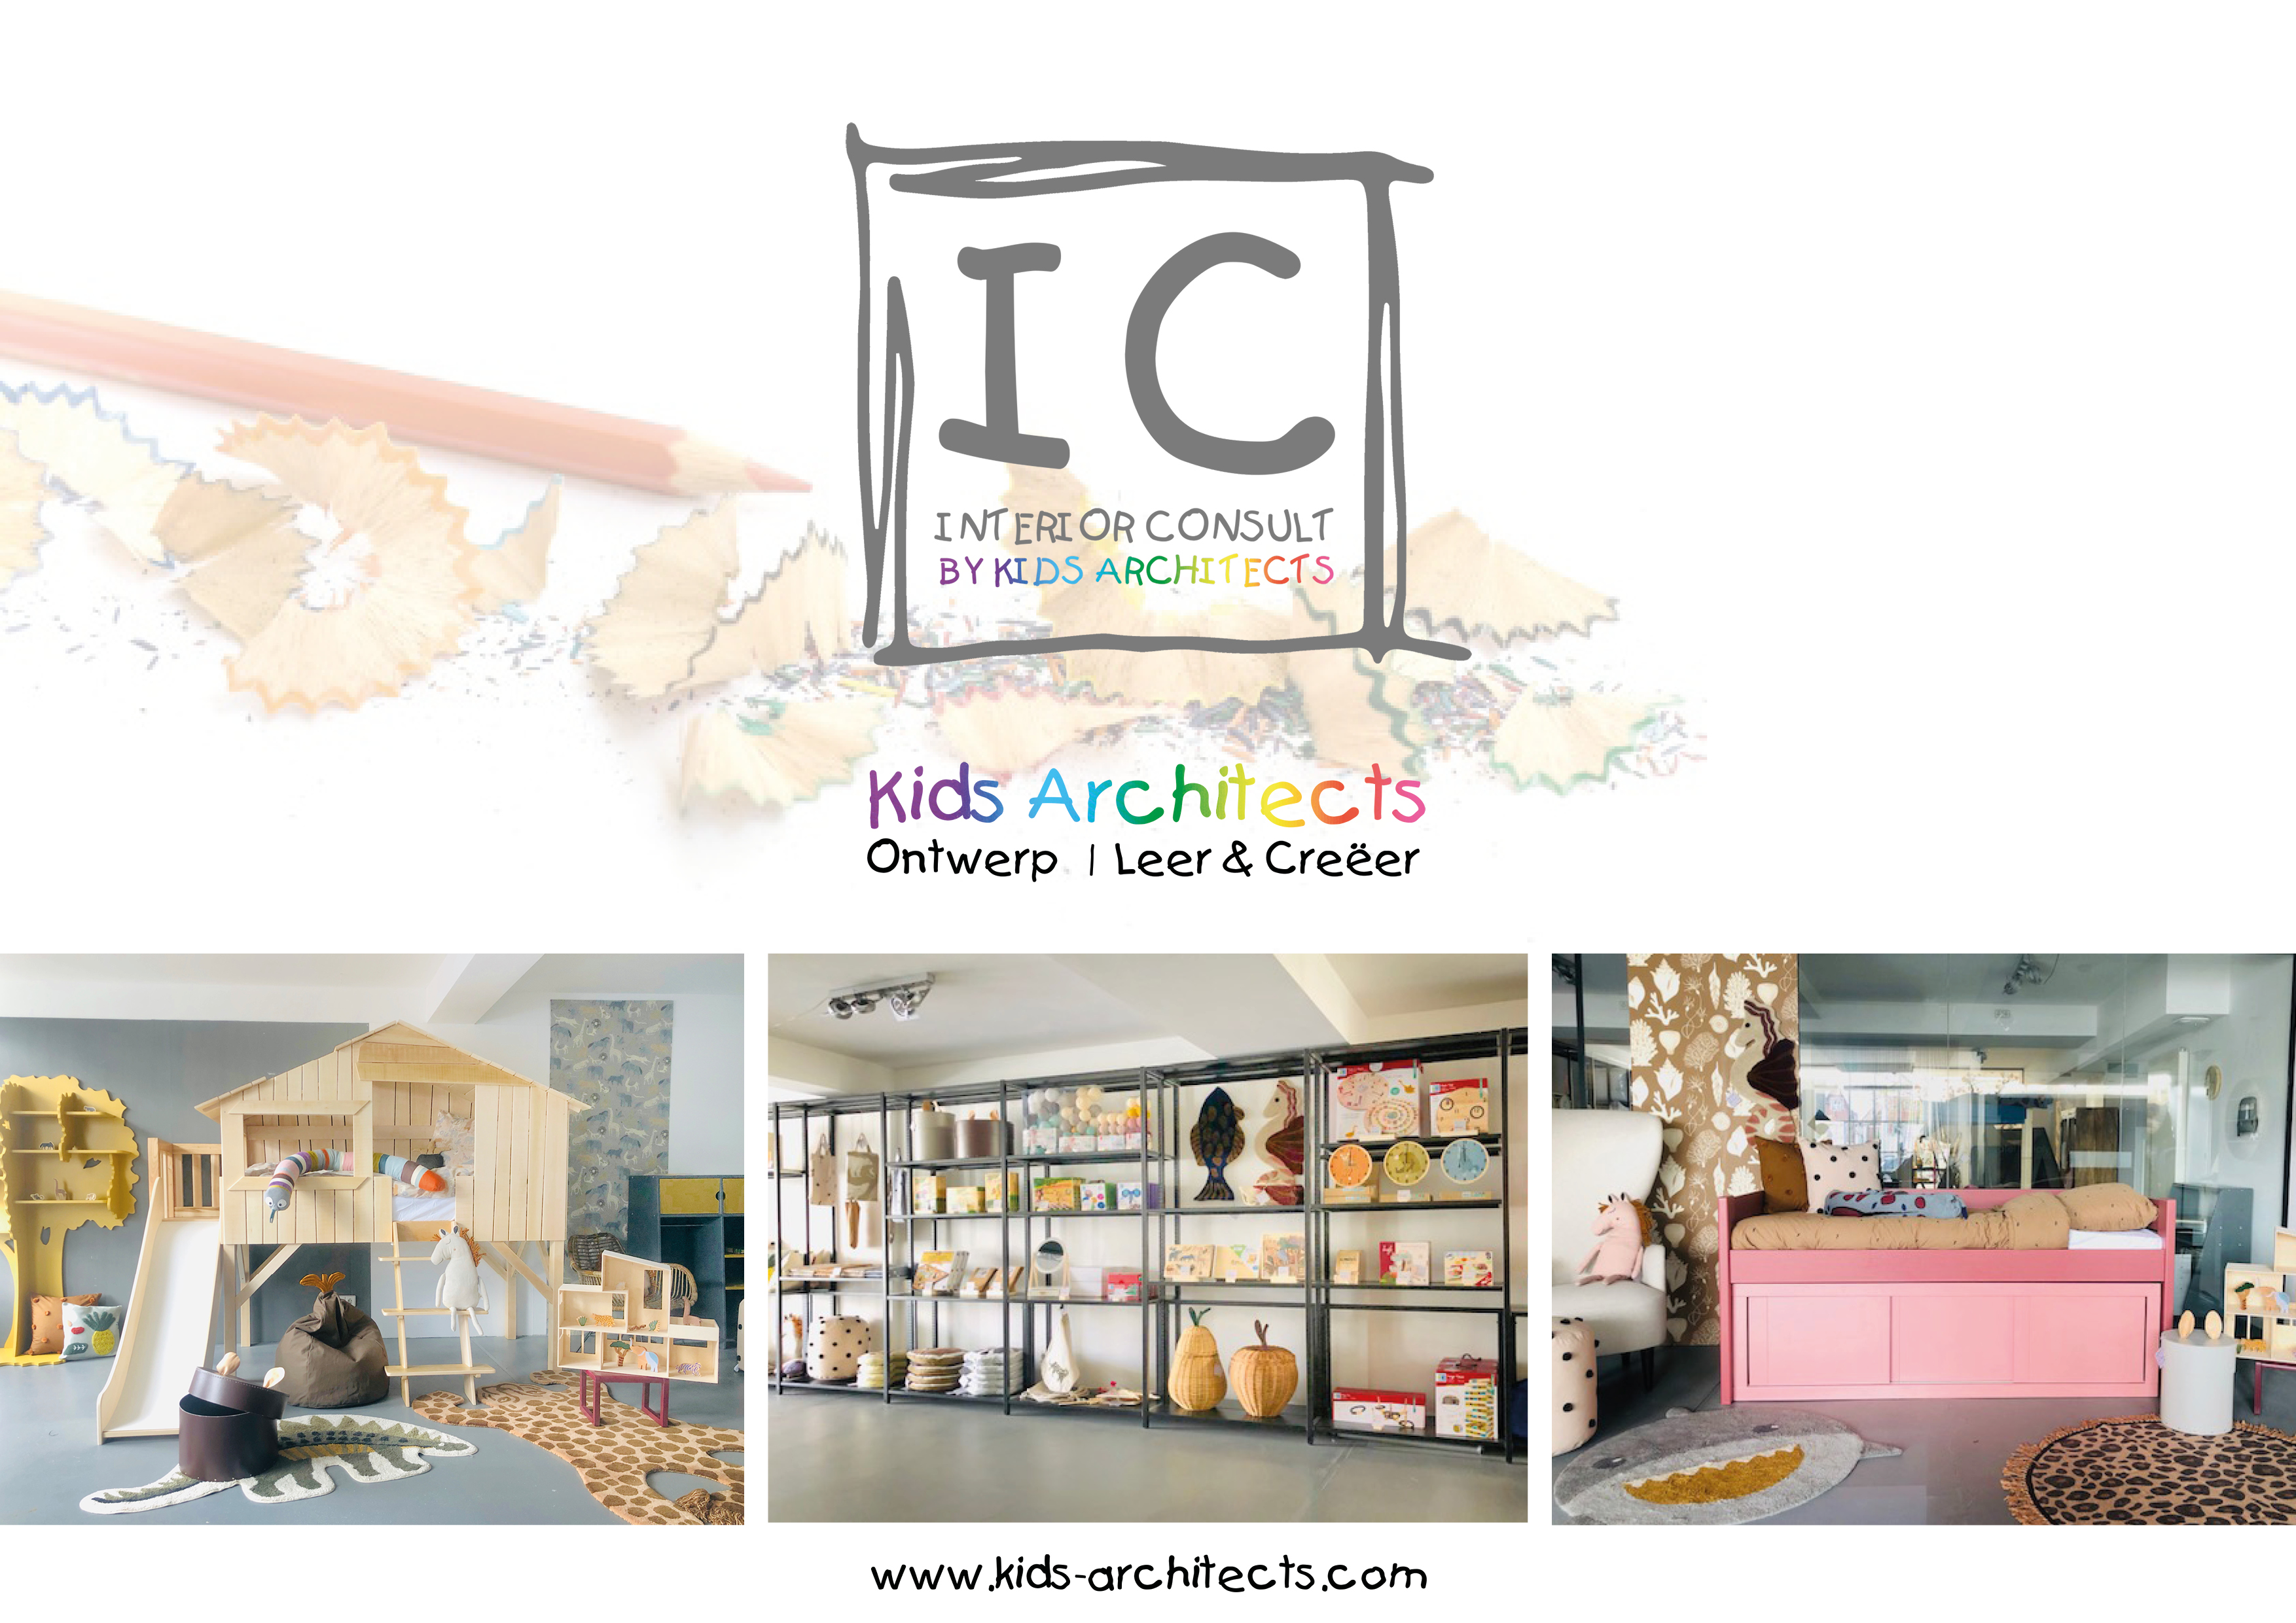 Kids Architects